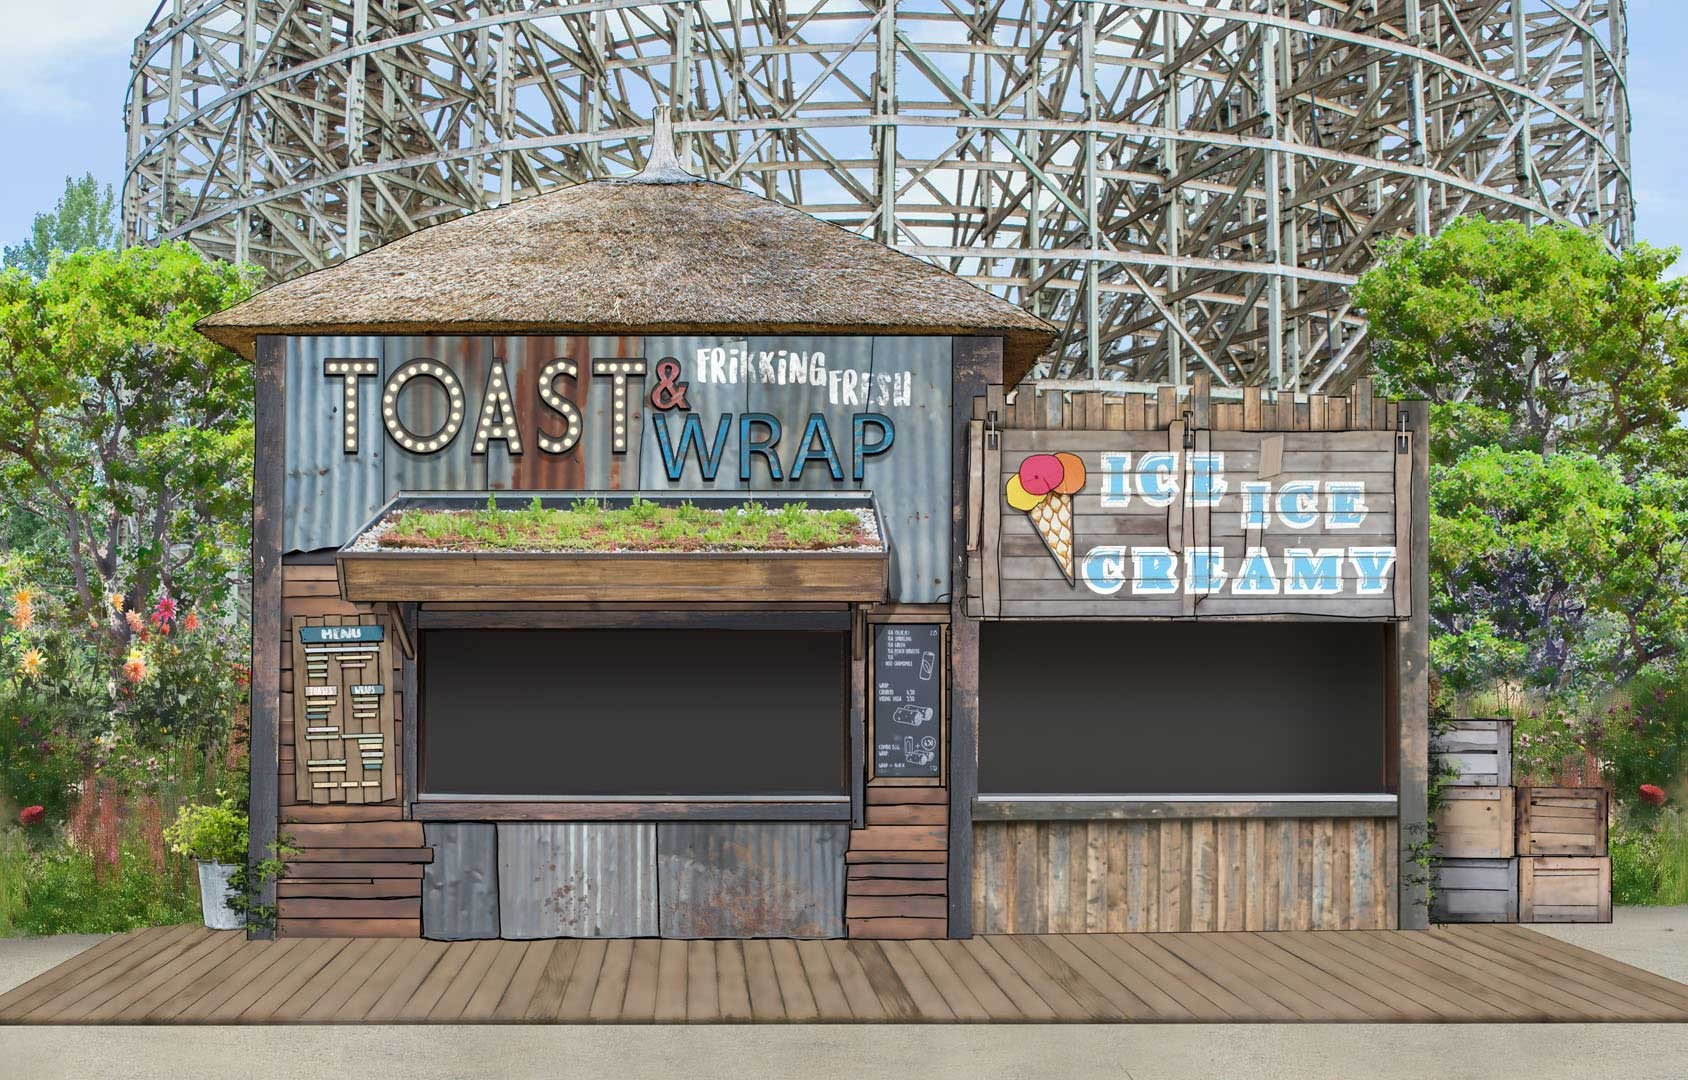 Design of food and beverage outlet at the Wilderness area of Walibi Holland